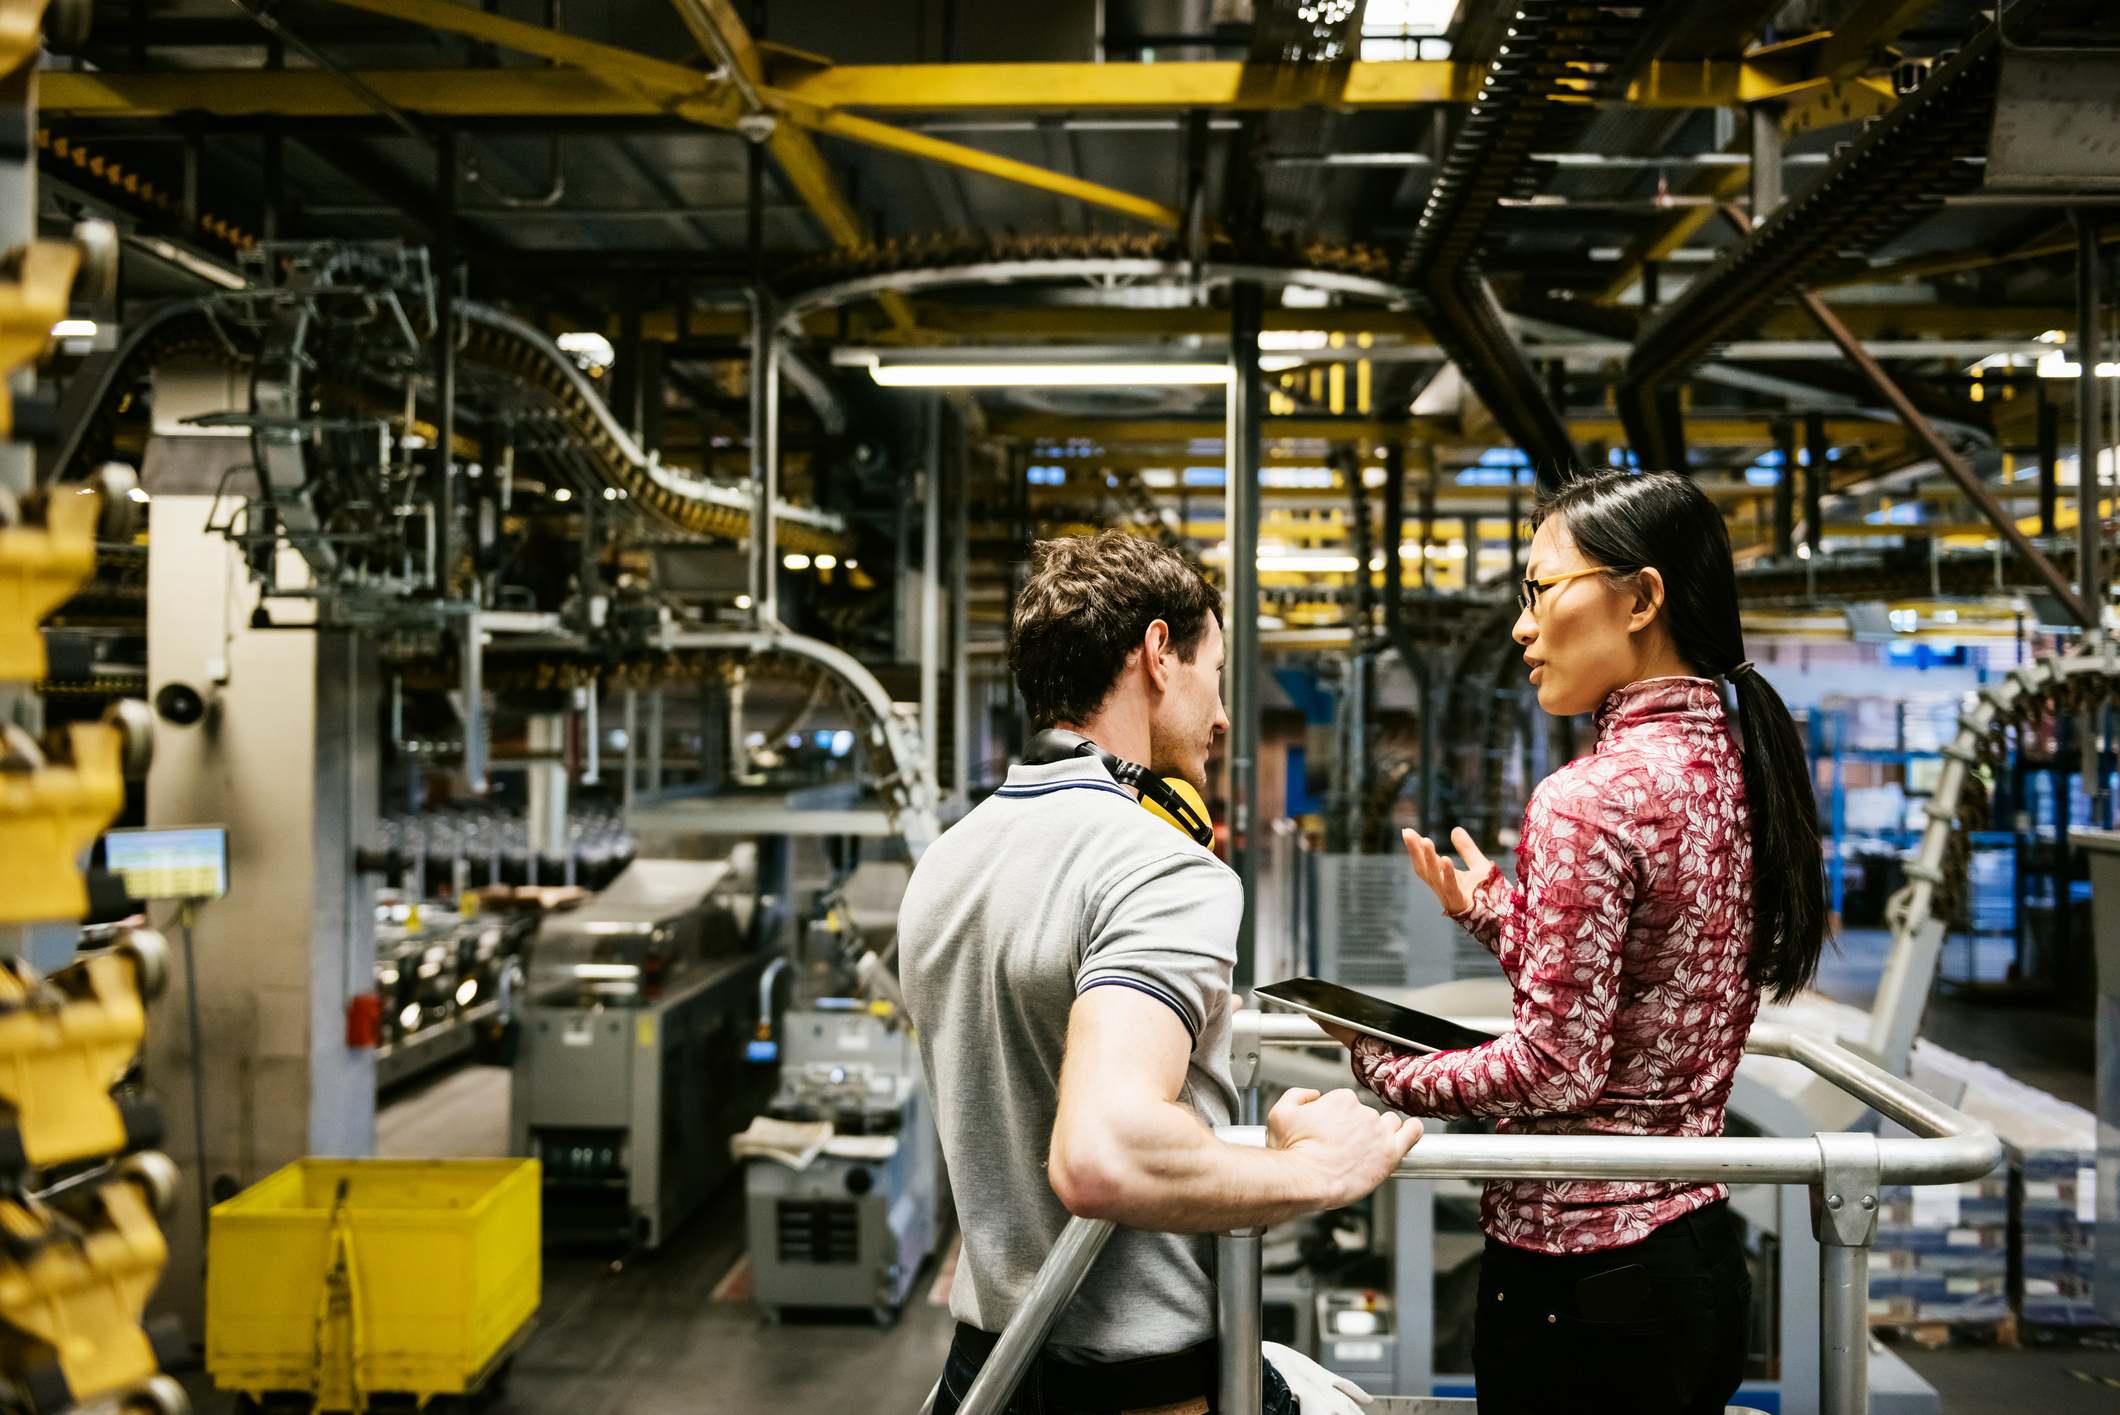 7 crucial manufacturing insurance features to consider